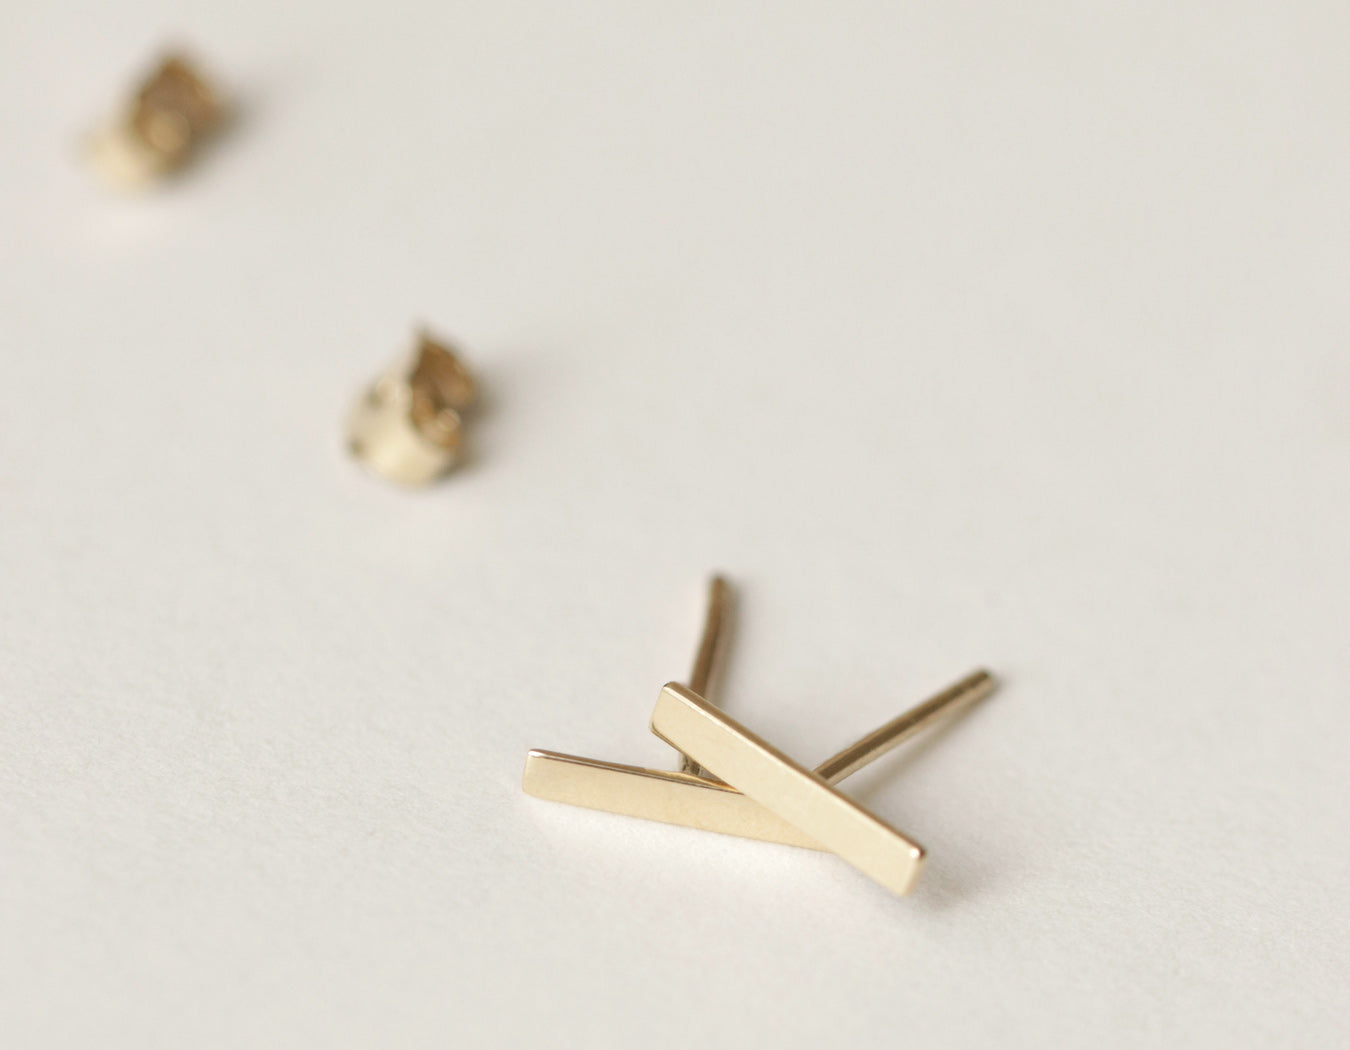 Minimalist Line Stud earrings solid 14k gold Vrai & Oro simple elegant jewelry